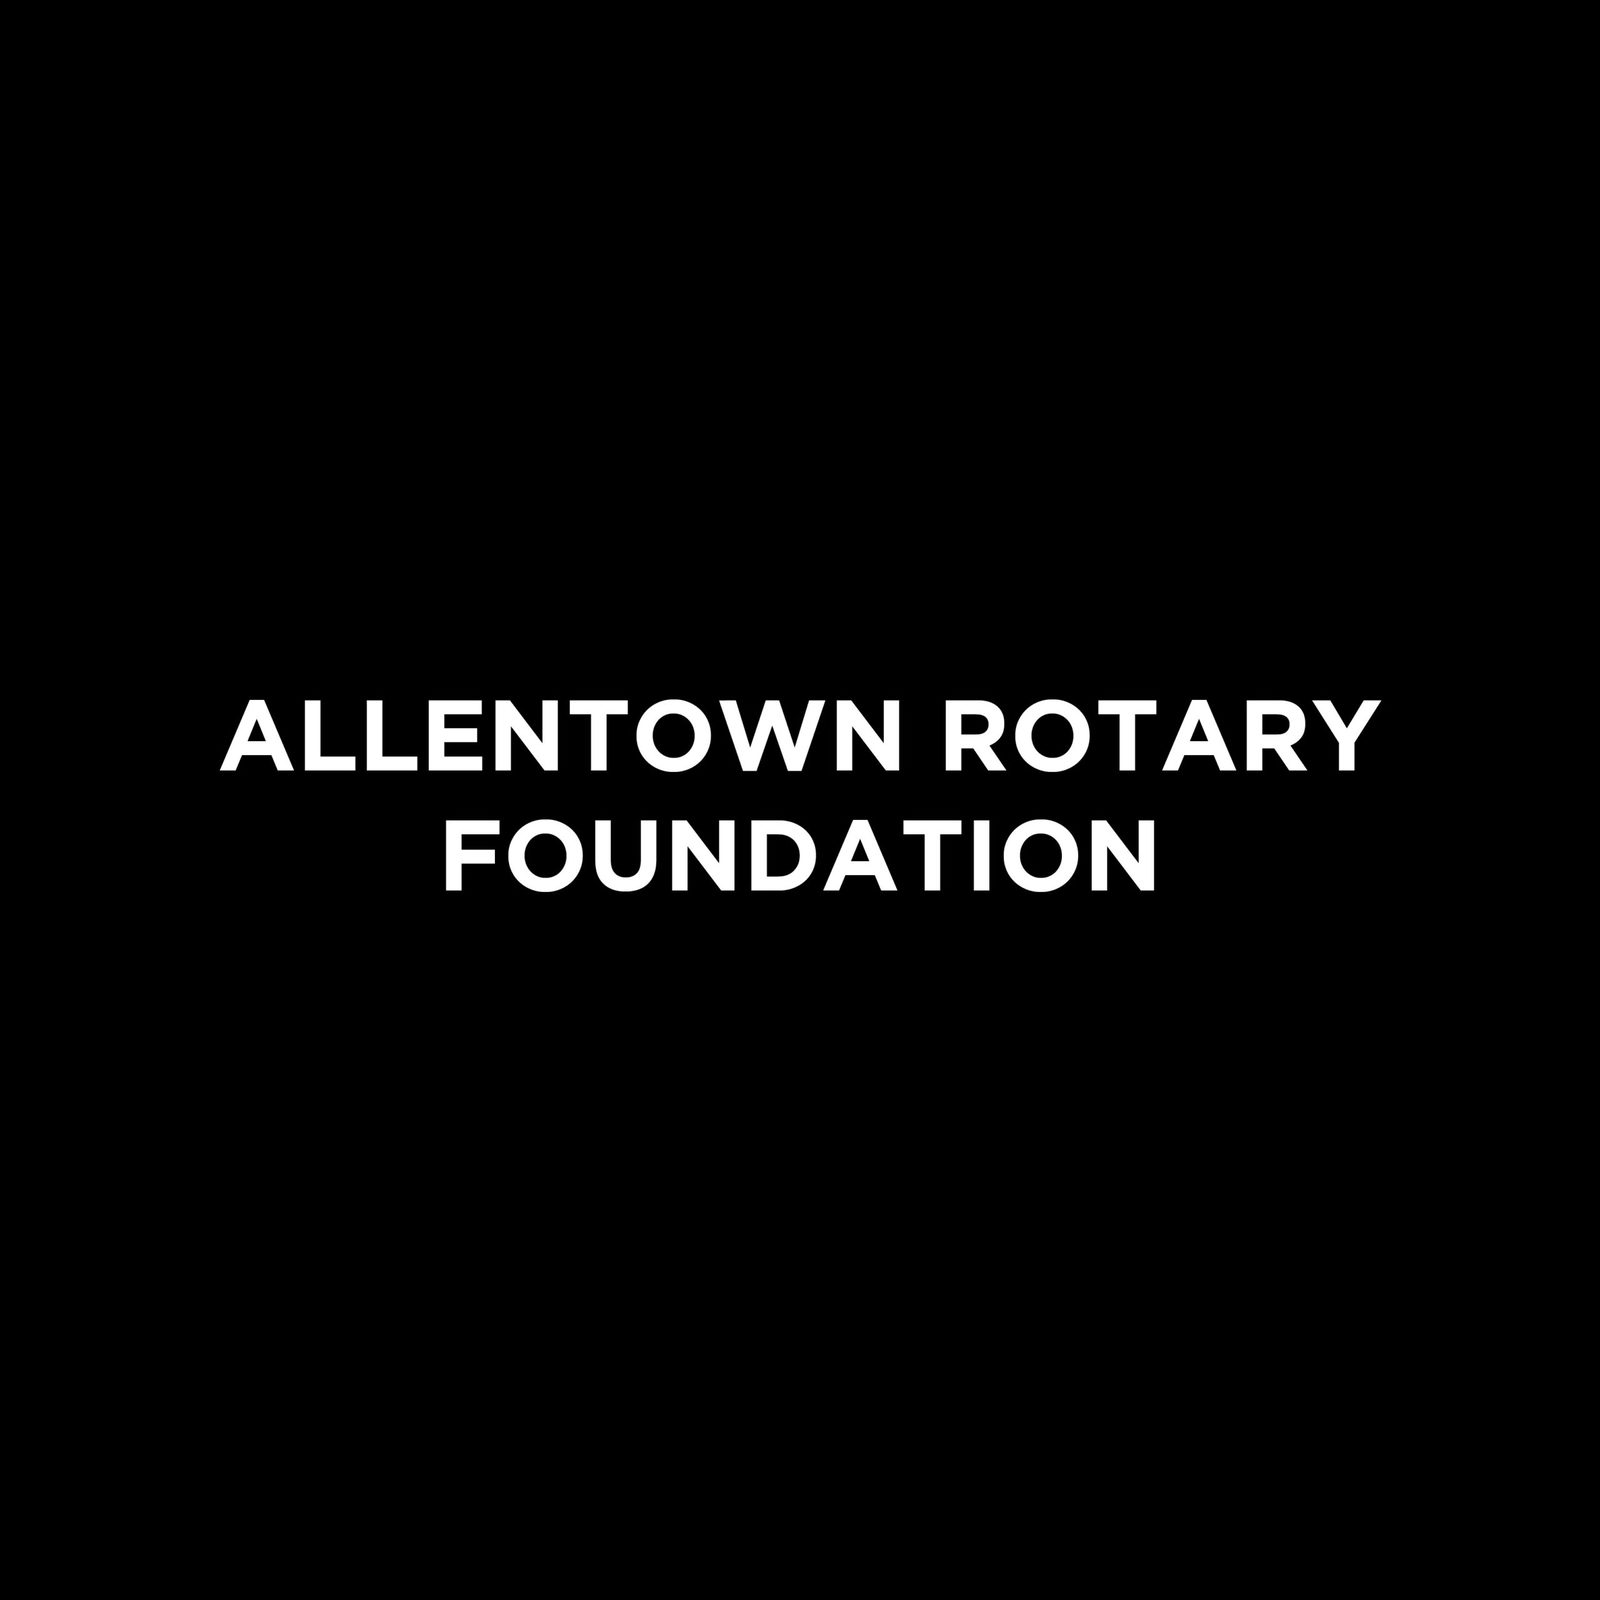 Allentown Rotary Foundation